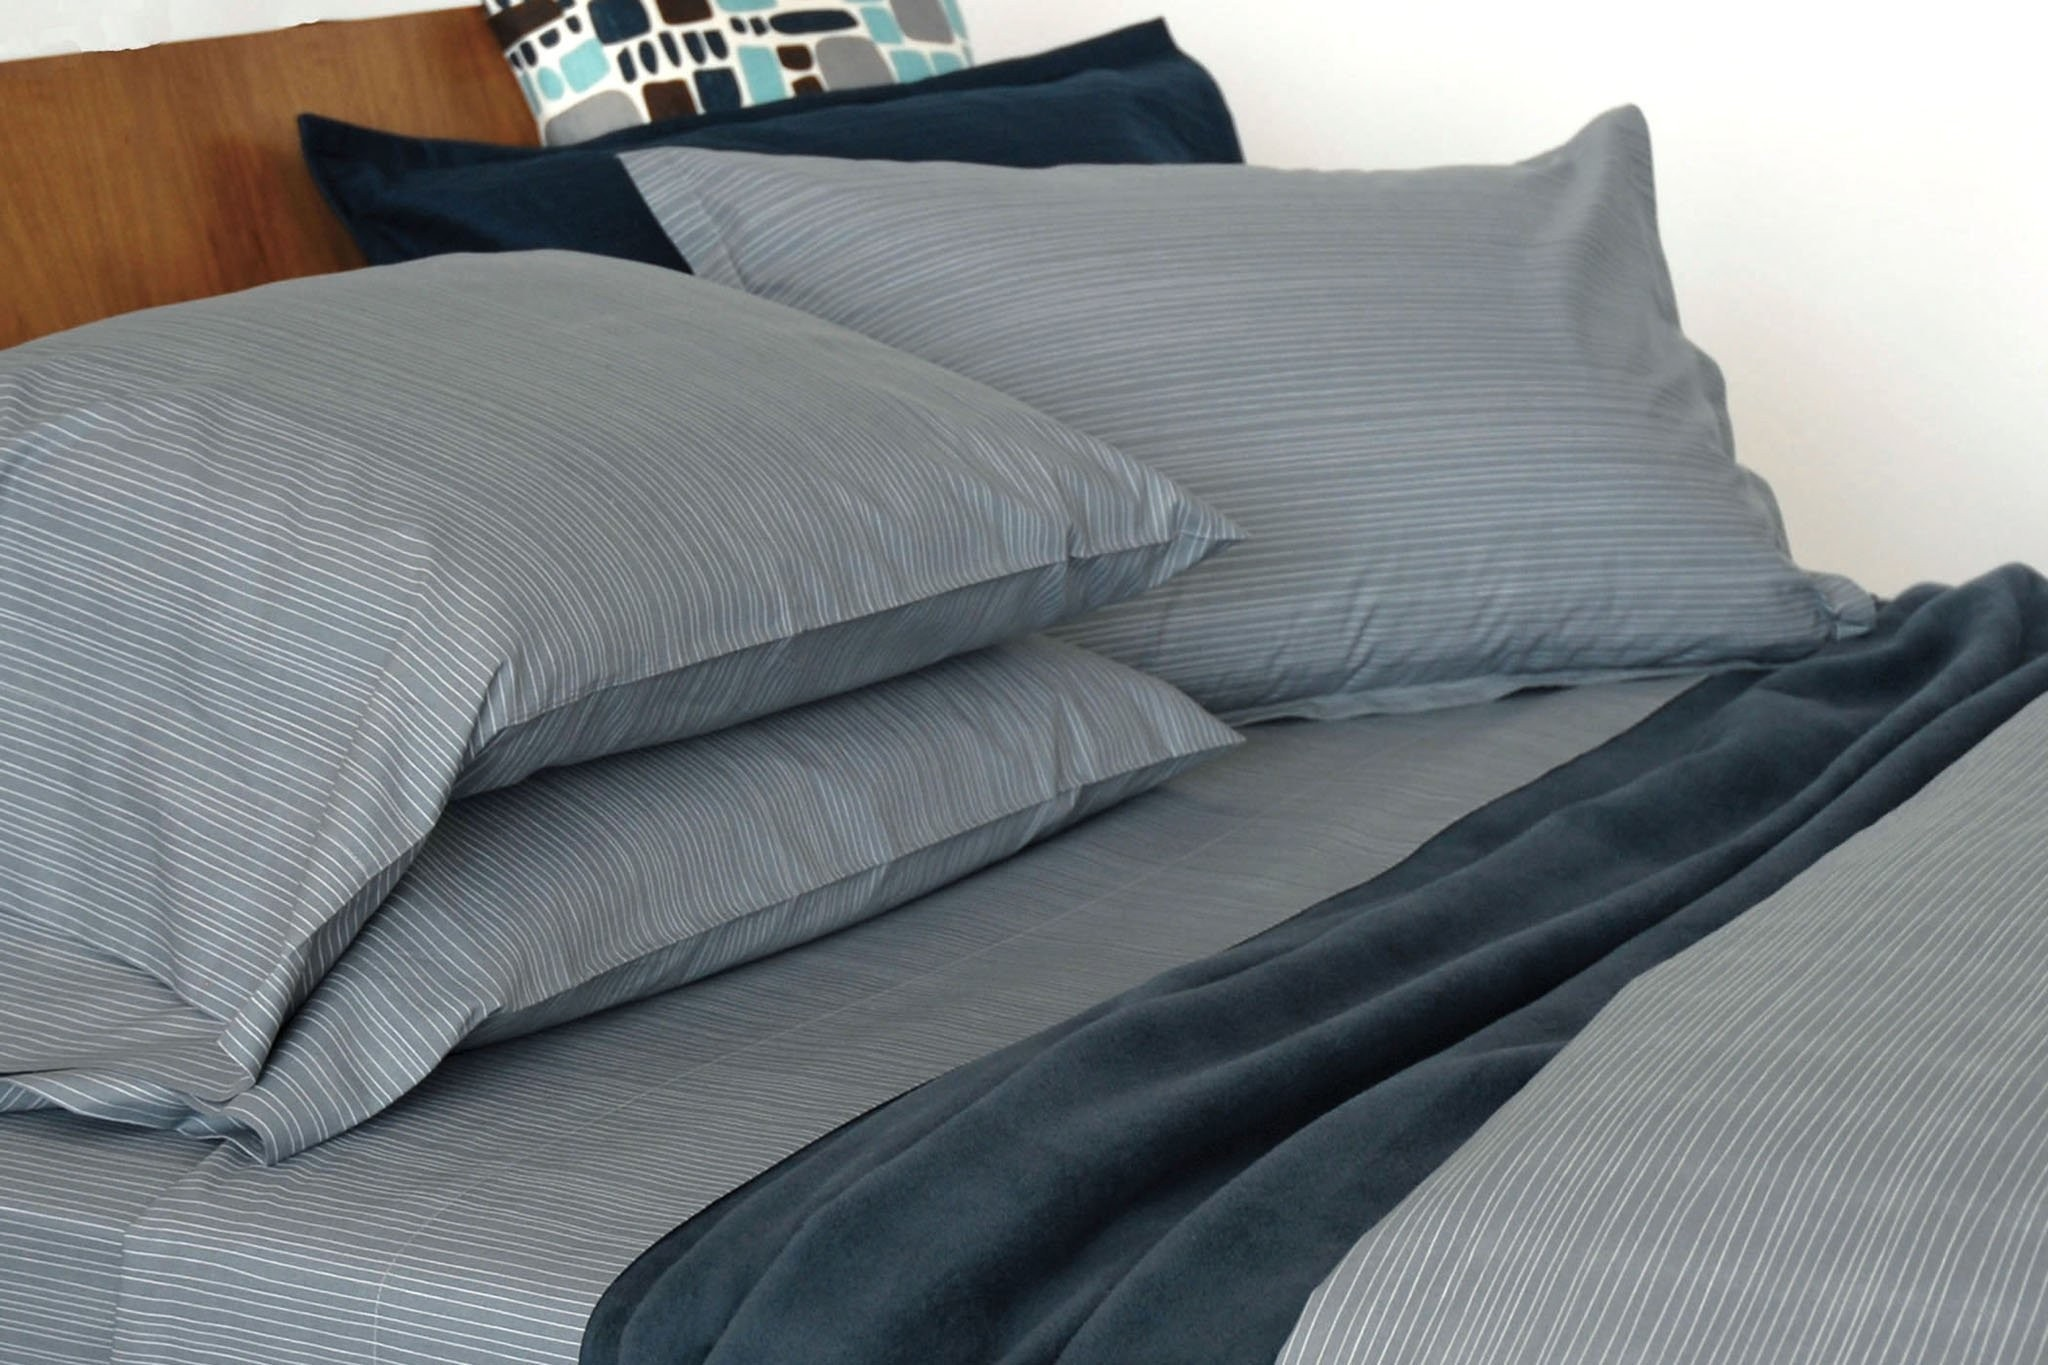 Area Bedding Oneway Fitted Sheet